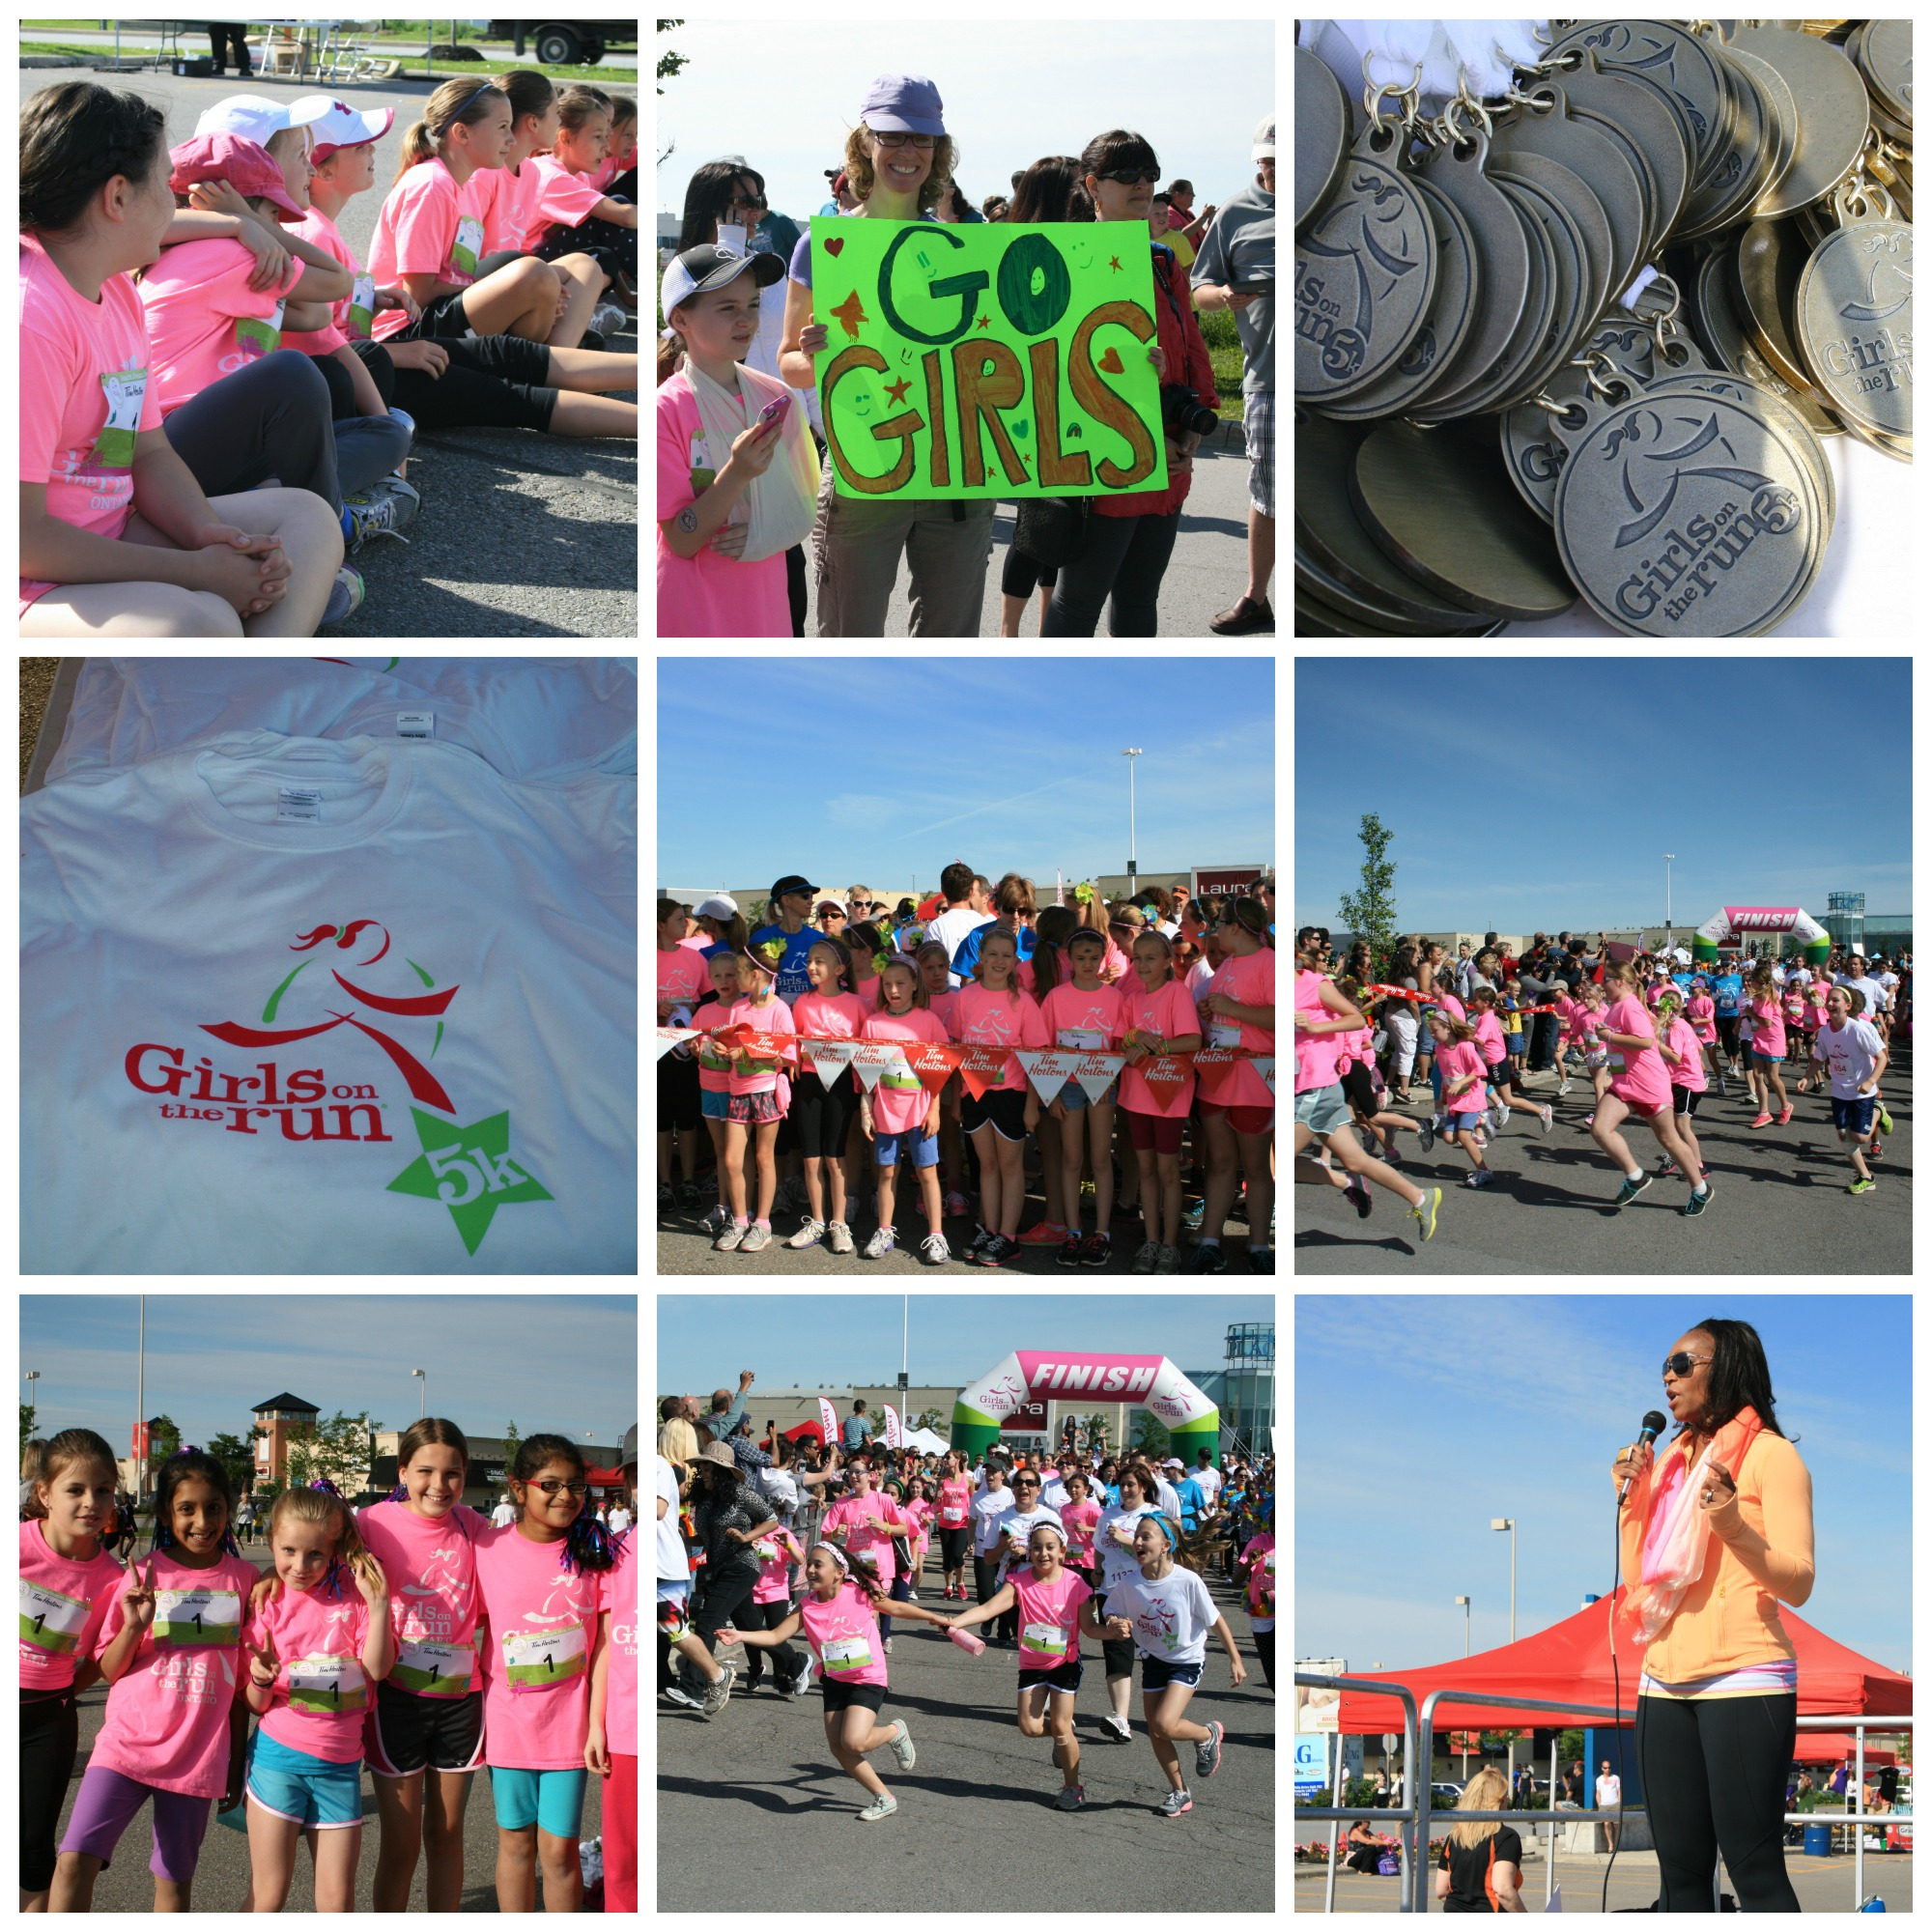 Girls on the run 2013